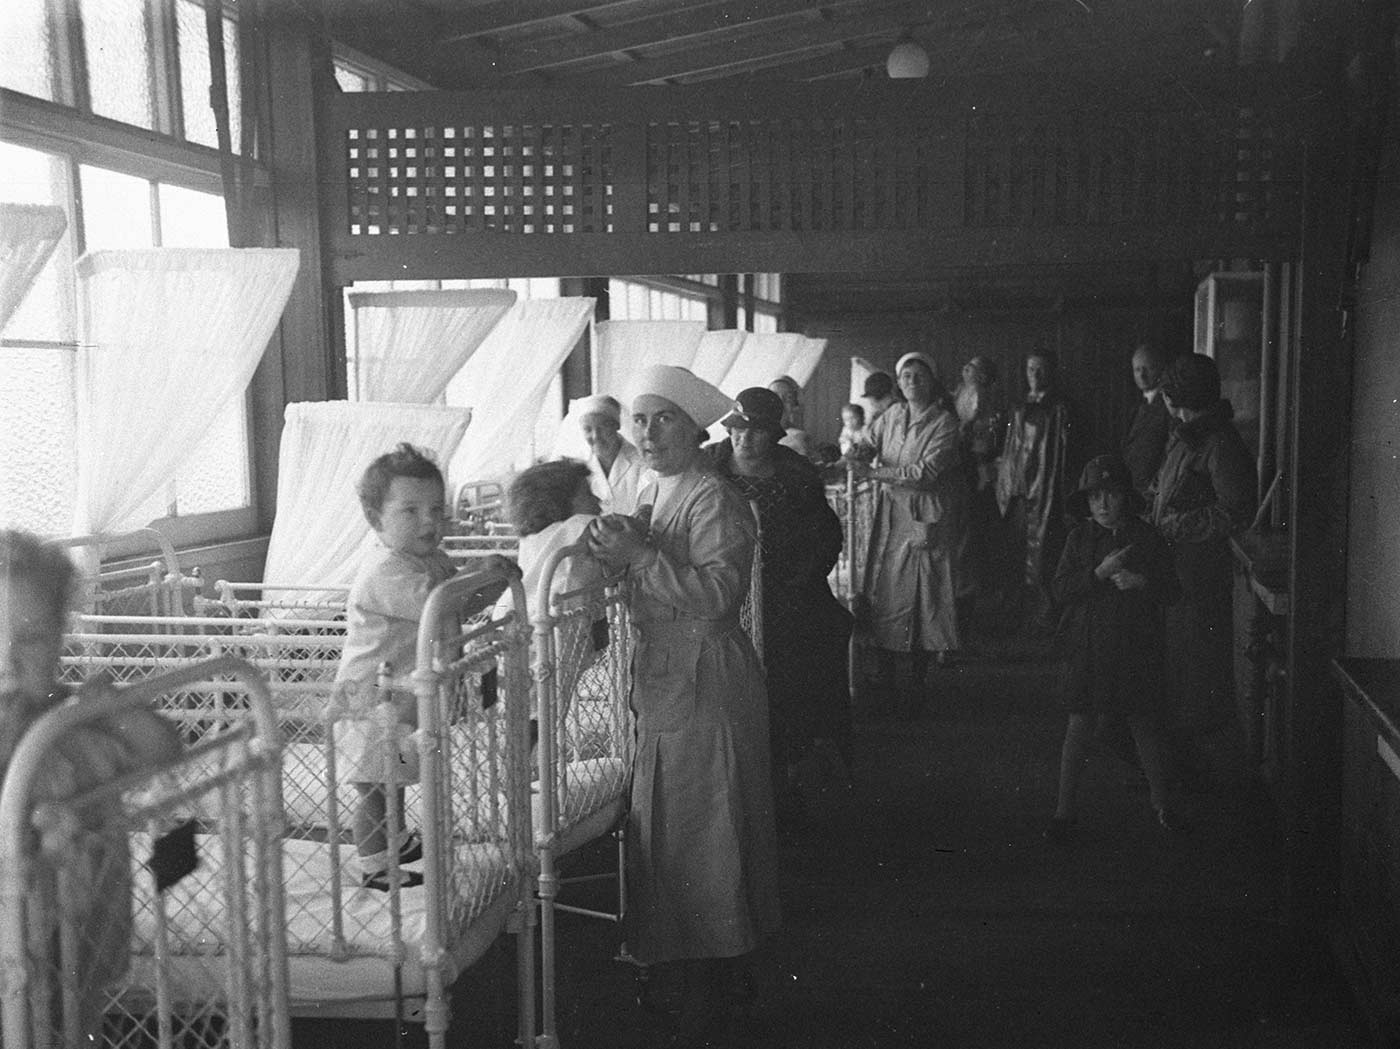 Black and white image showing a row of metal and wire framed cots, painted white, at left. Three young children stand in the cots closest to the camera. A nurse stands near the third. Other children, cots and people stand in the background. - click to view larger image